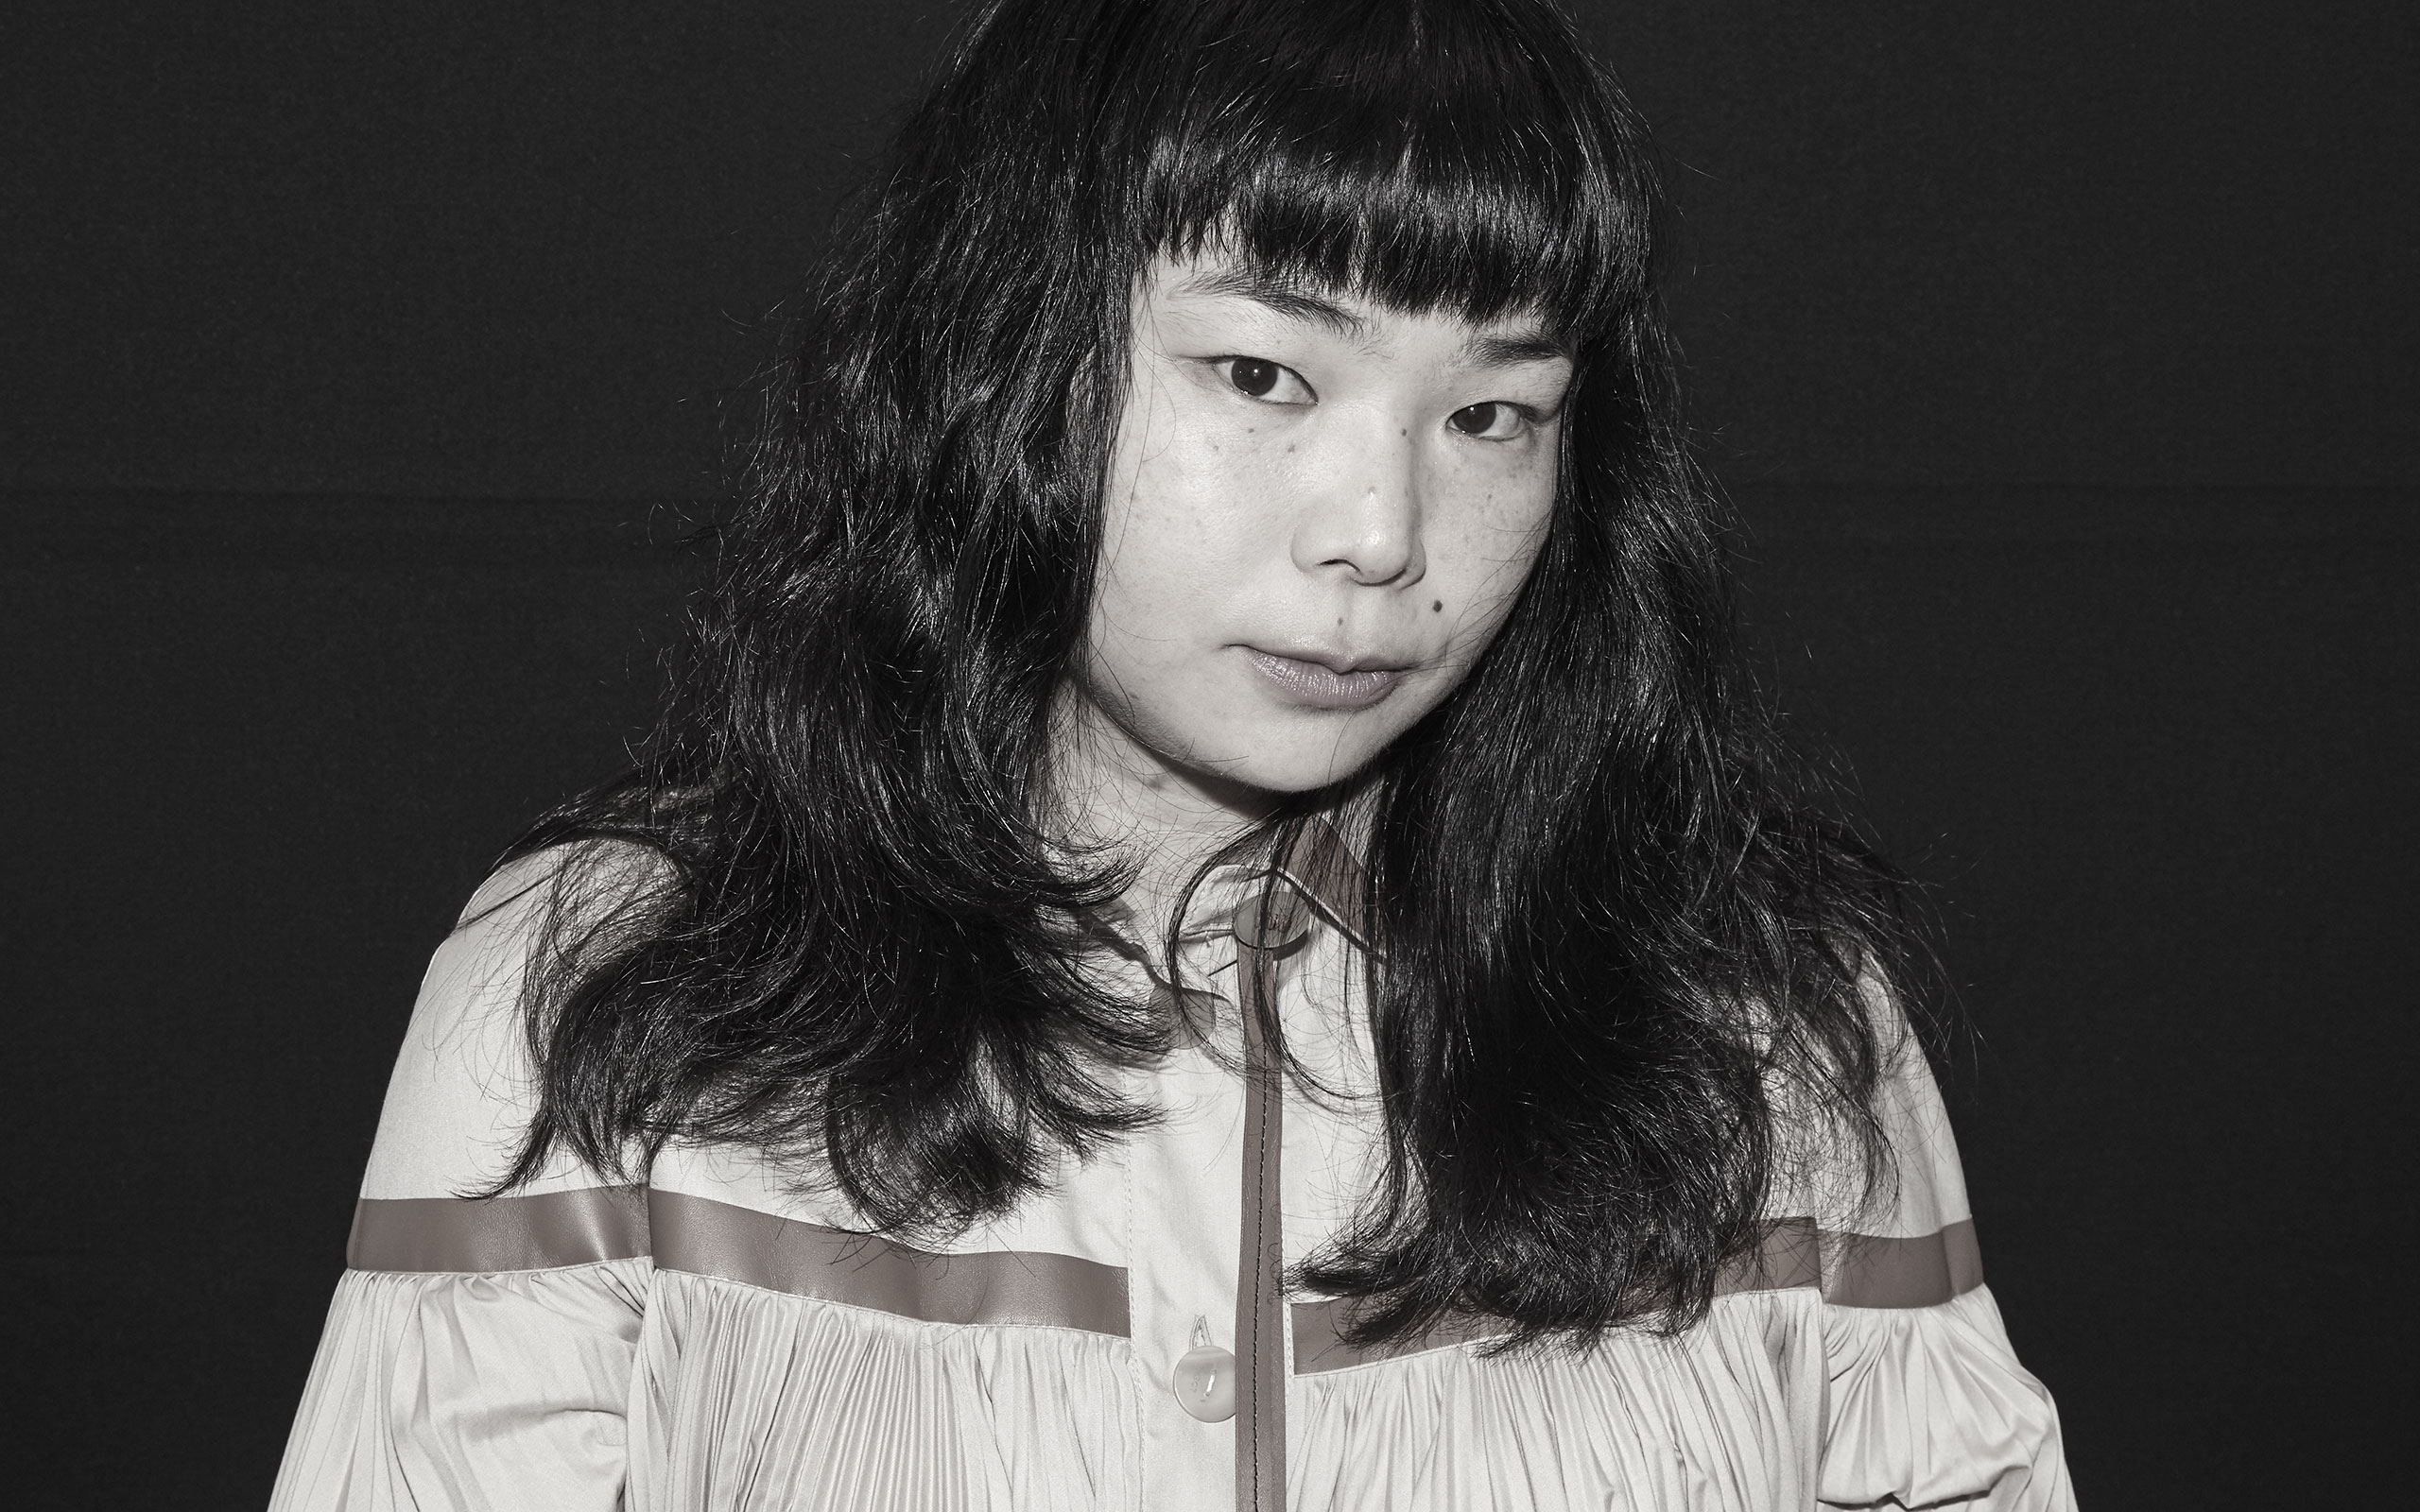 Interview with fumiko imano